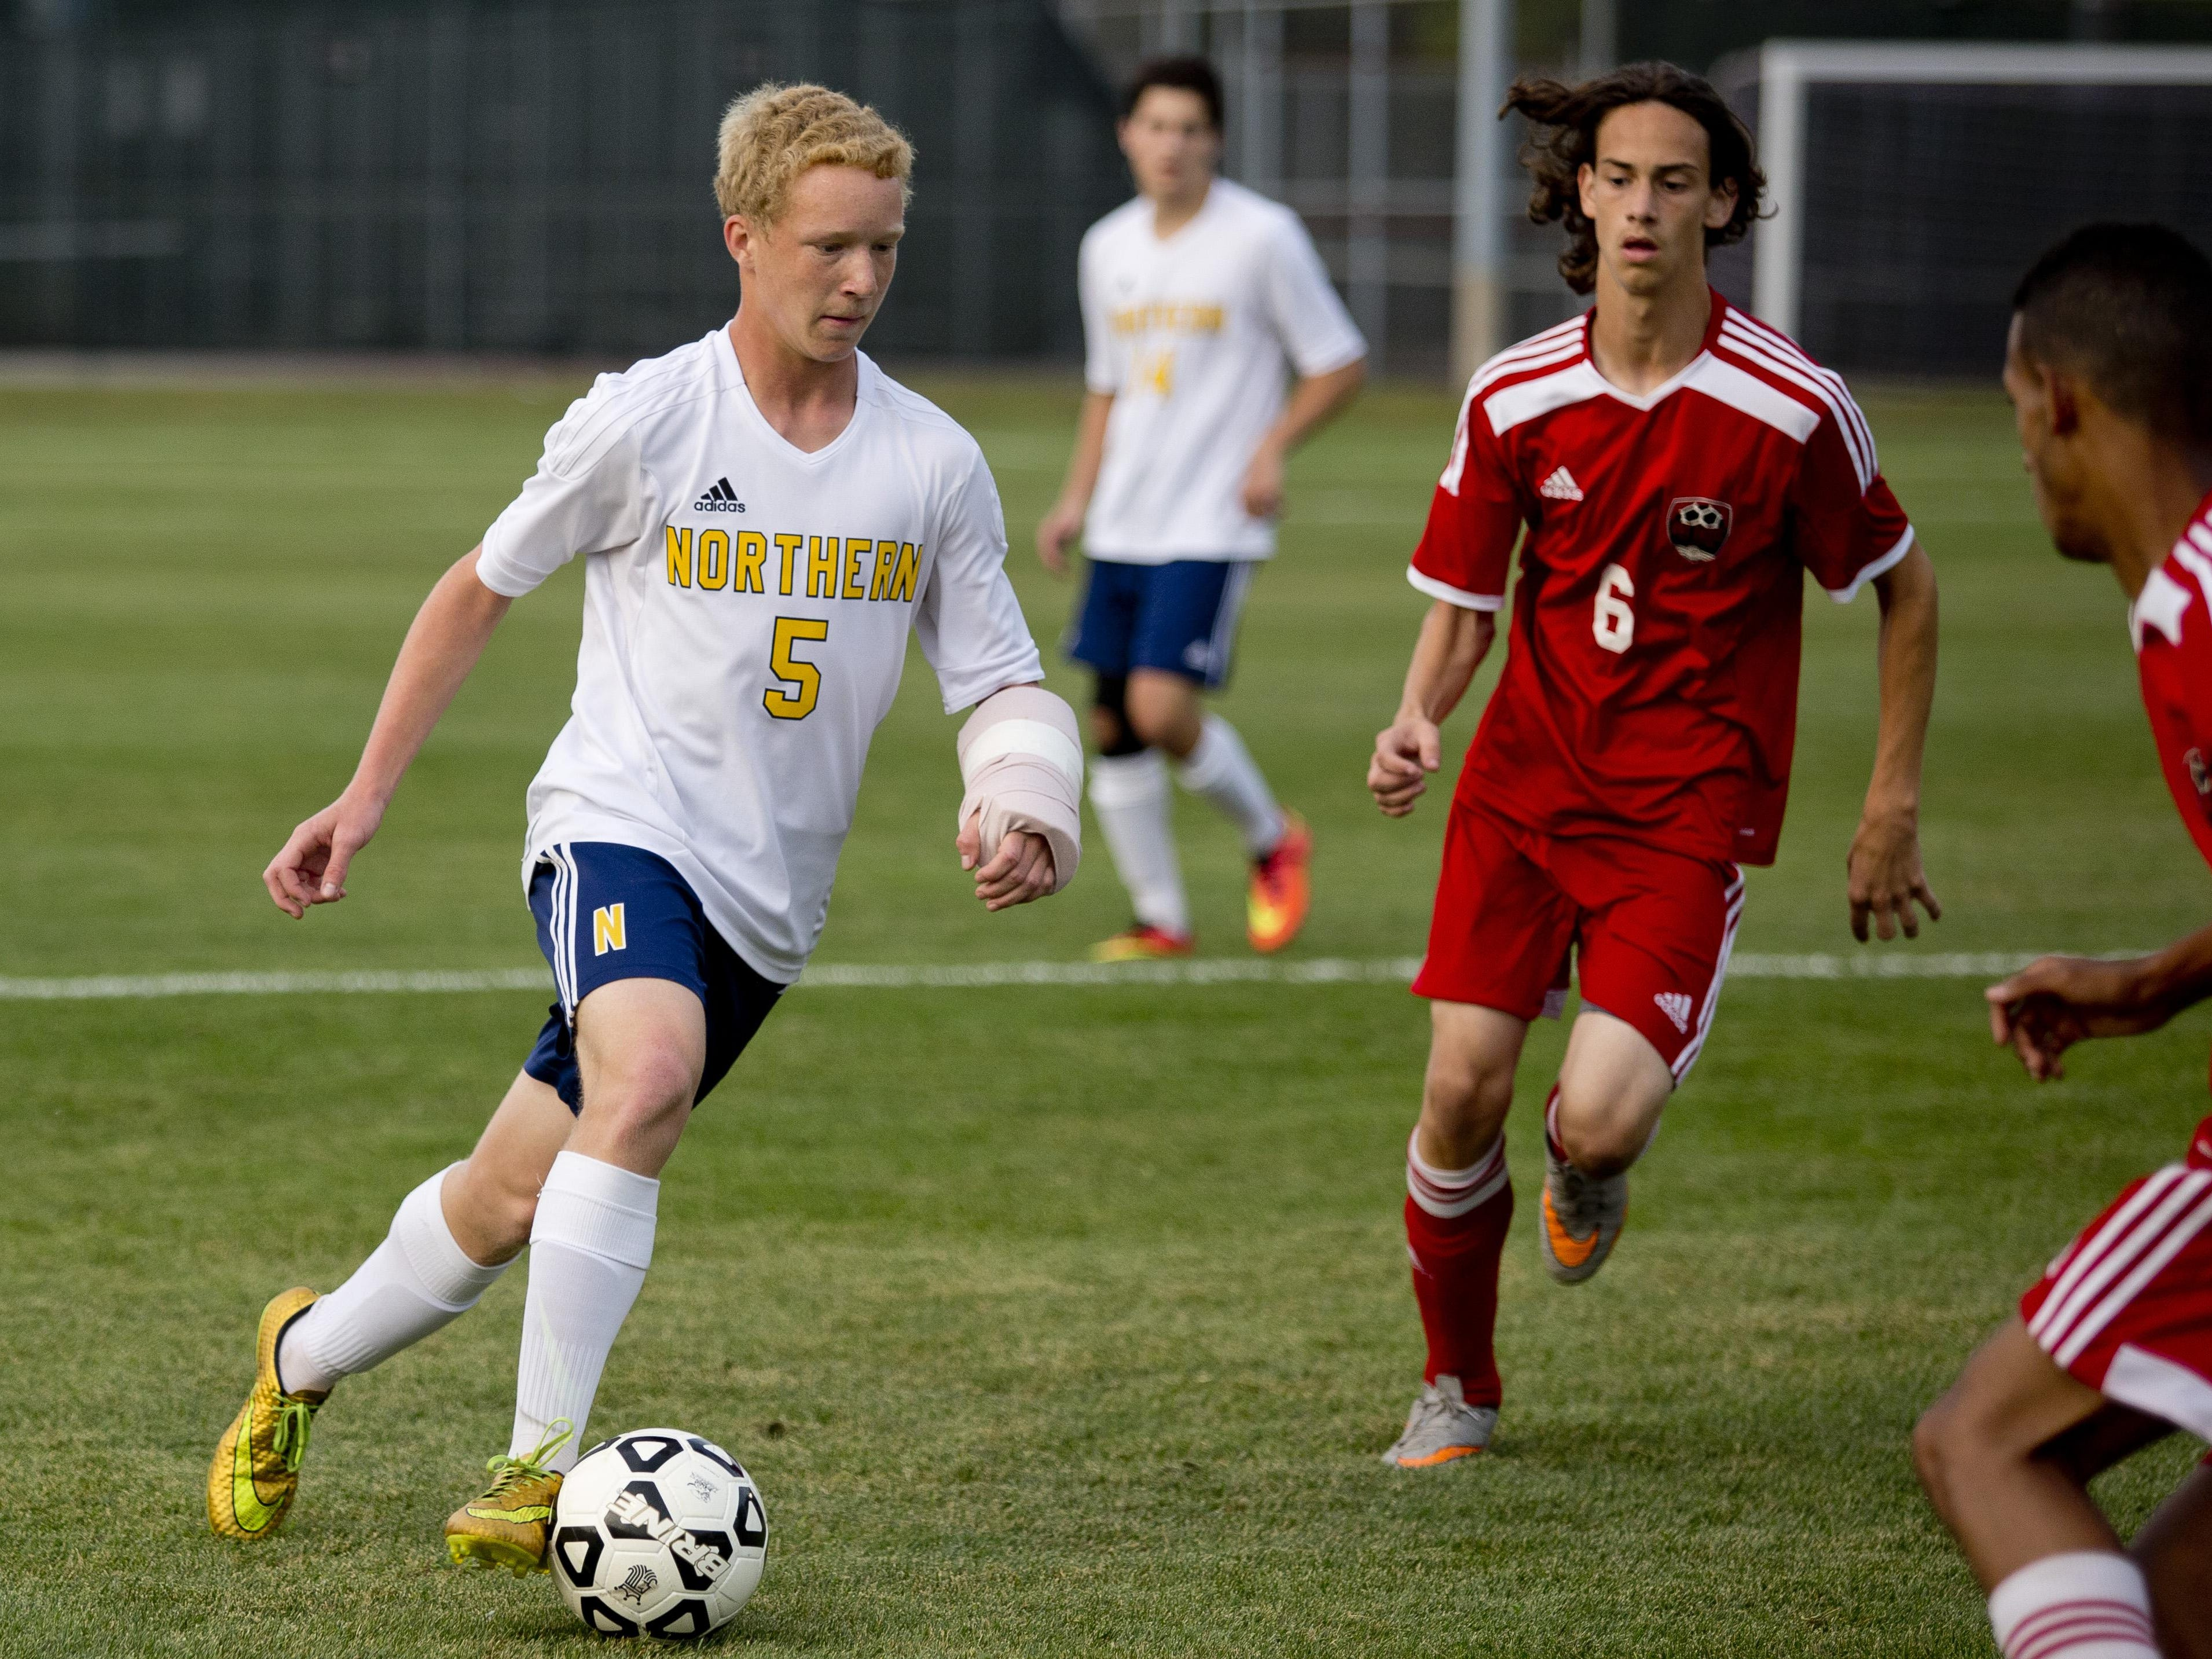 Port Huron Northern Jake Schroll works the ball down field during a soccer game Thursday, September 24, 2015 at Port Huron Northern High School.